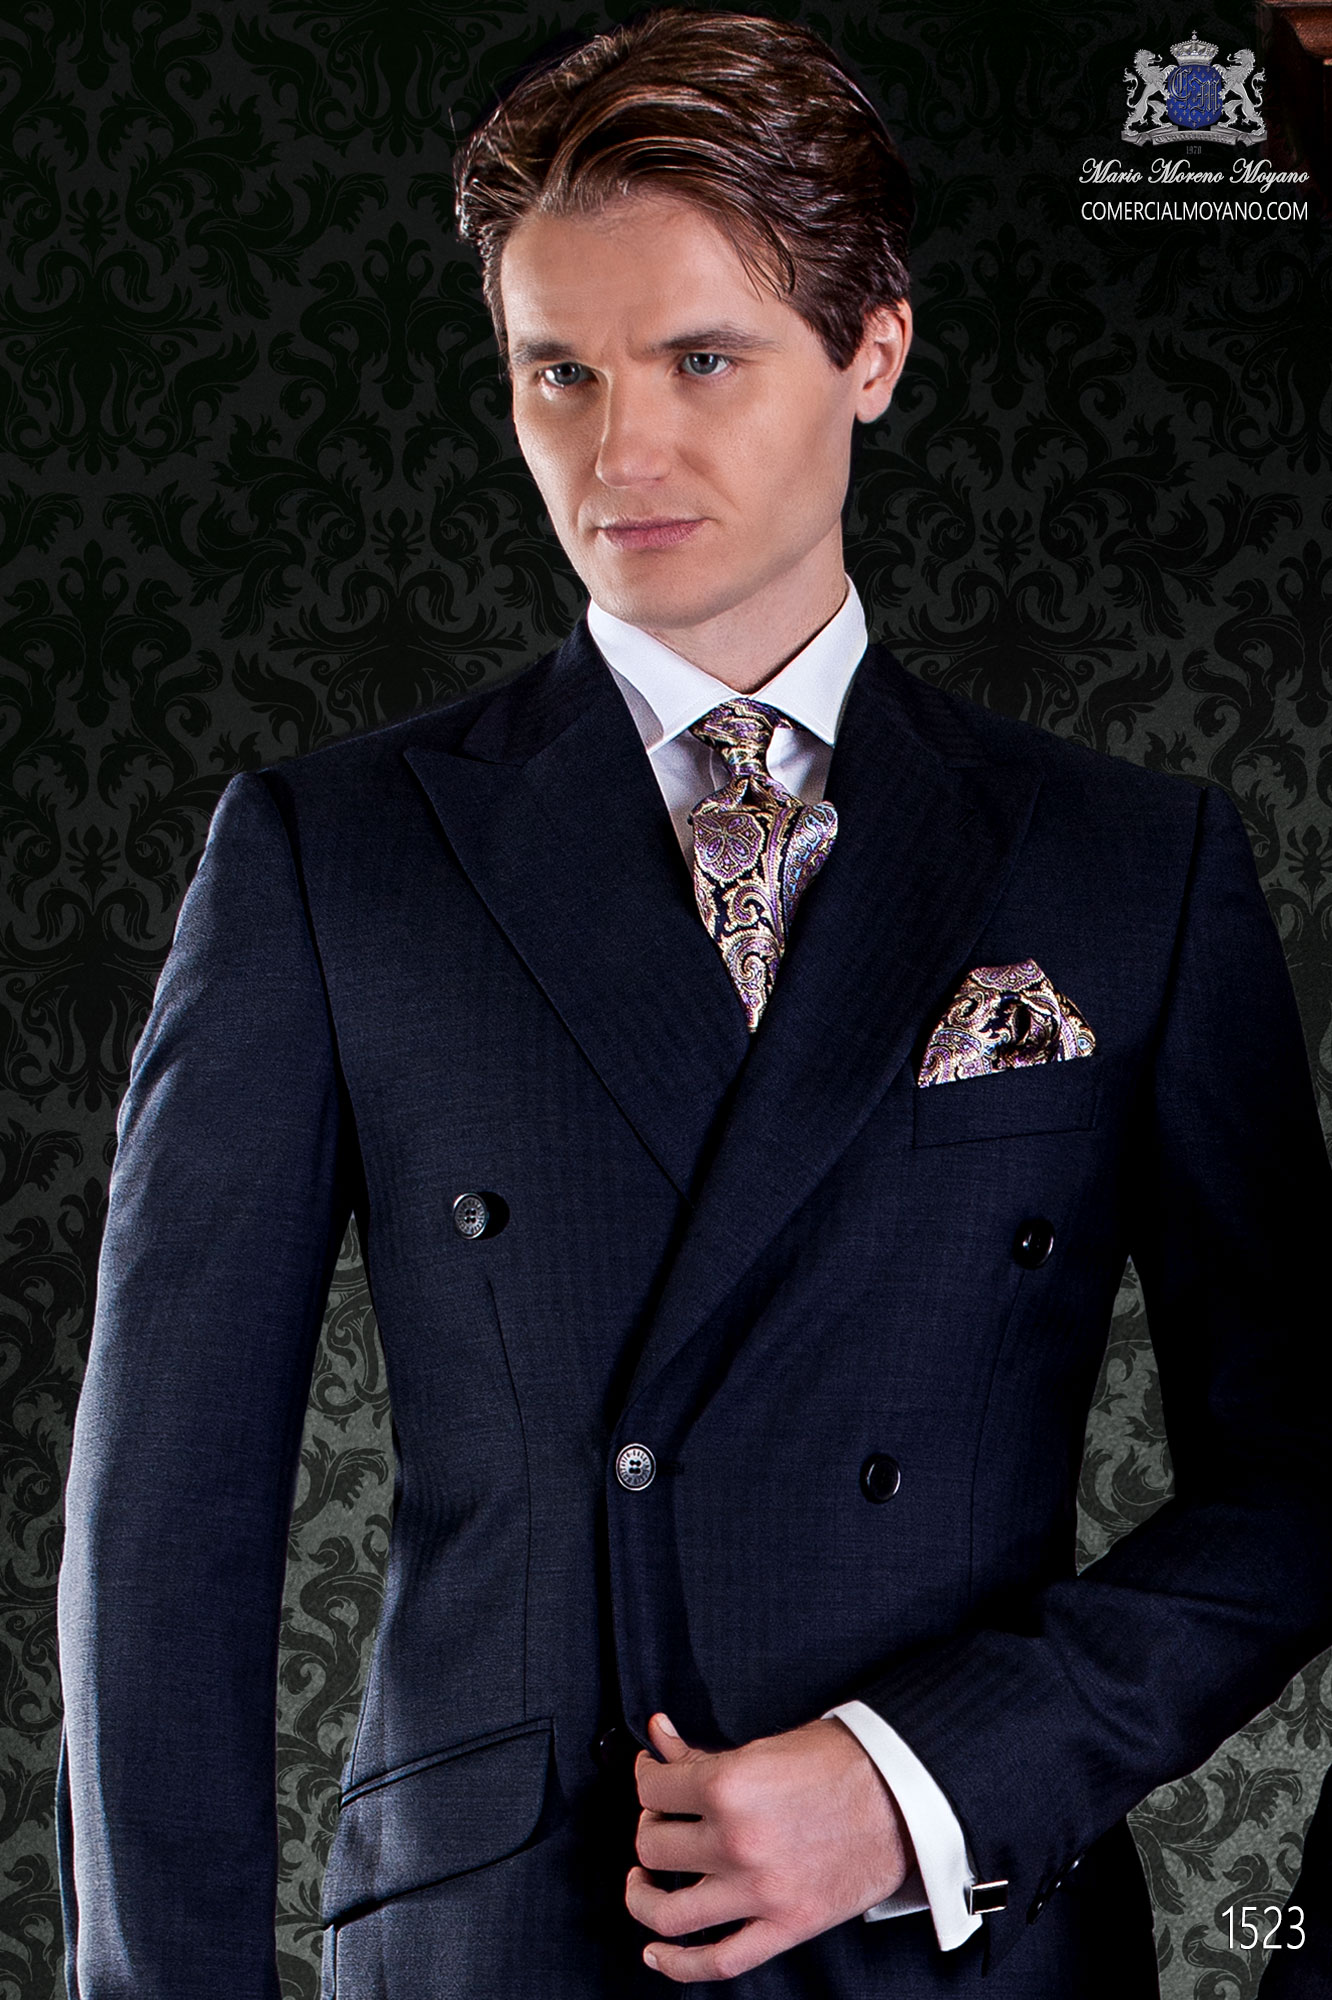 Italian double-breasted pure wool navy blue suit Ottavio Nuccio Gala